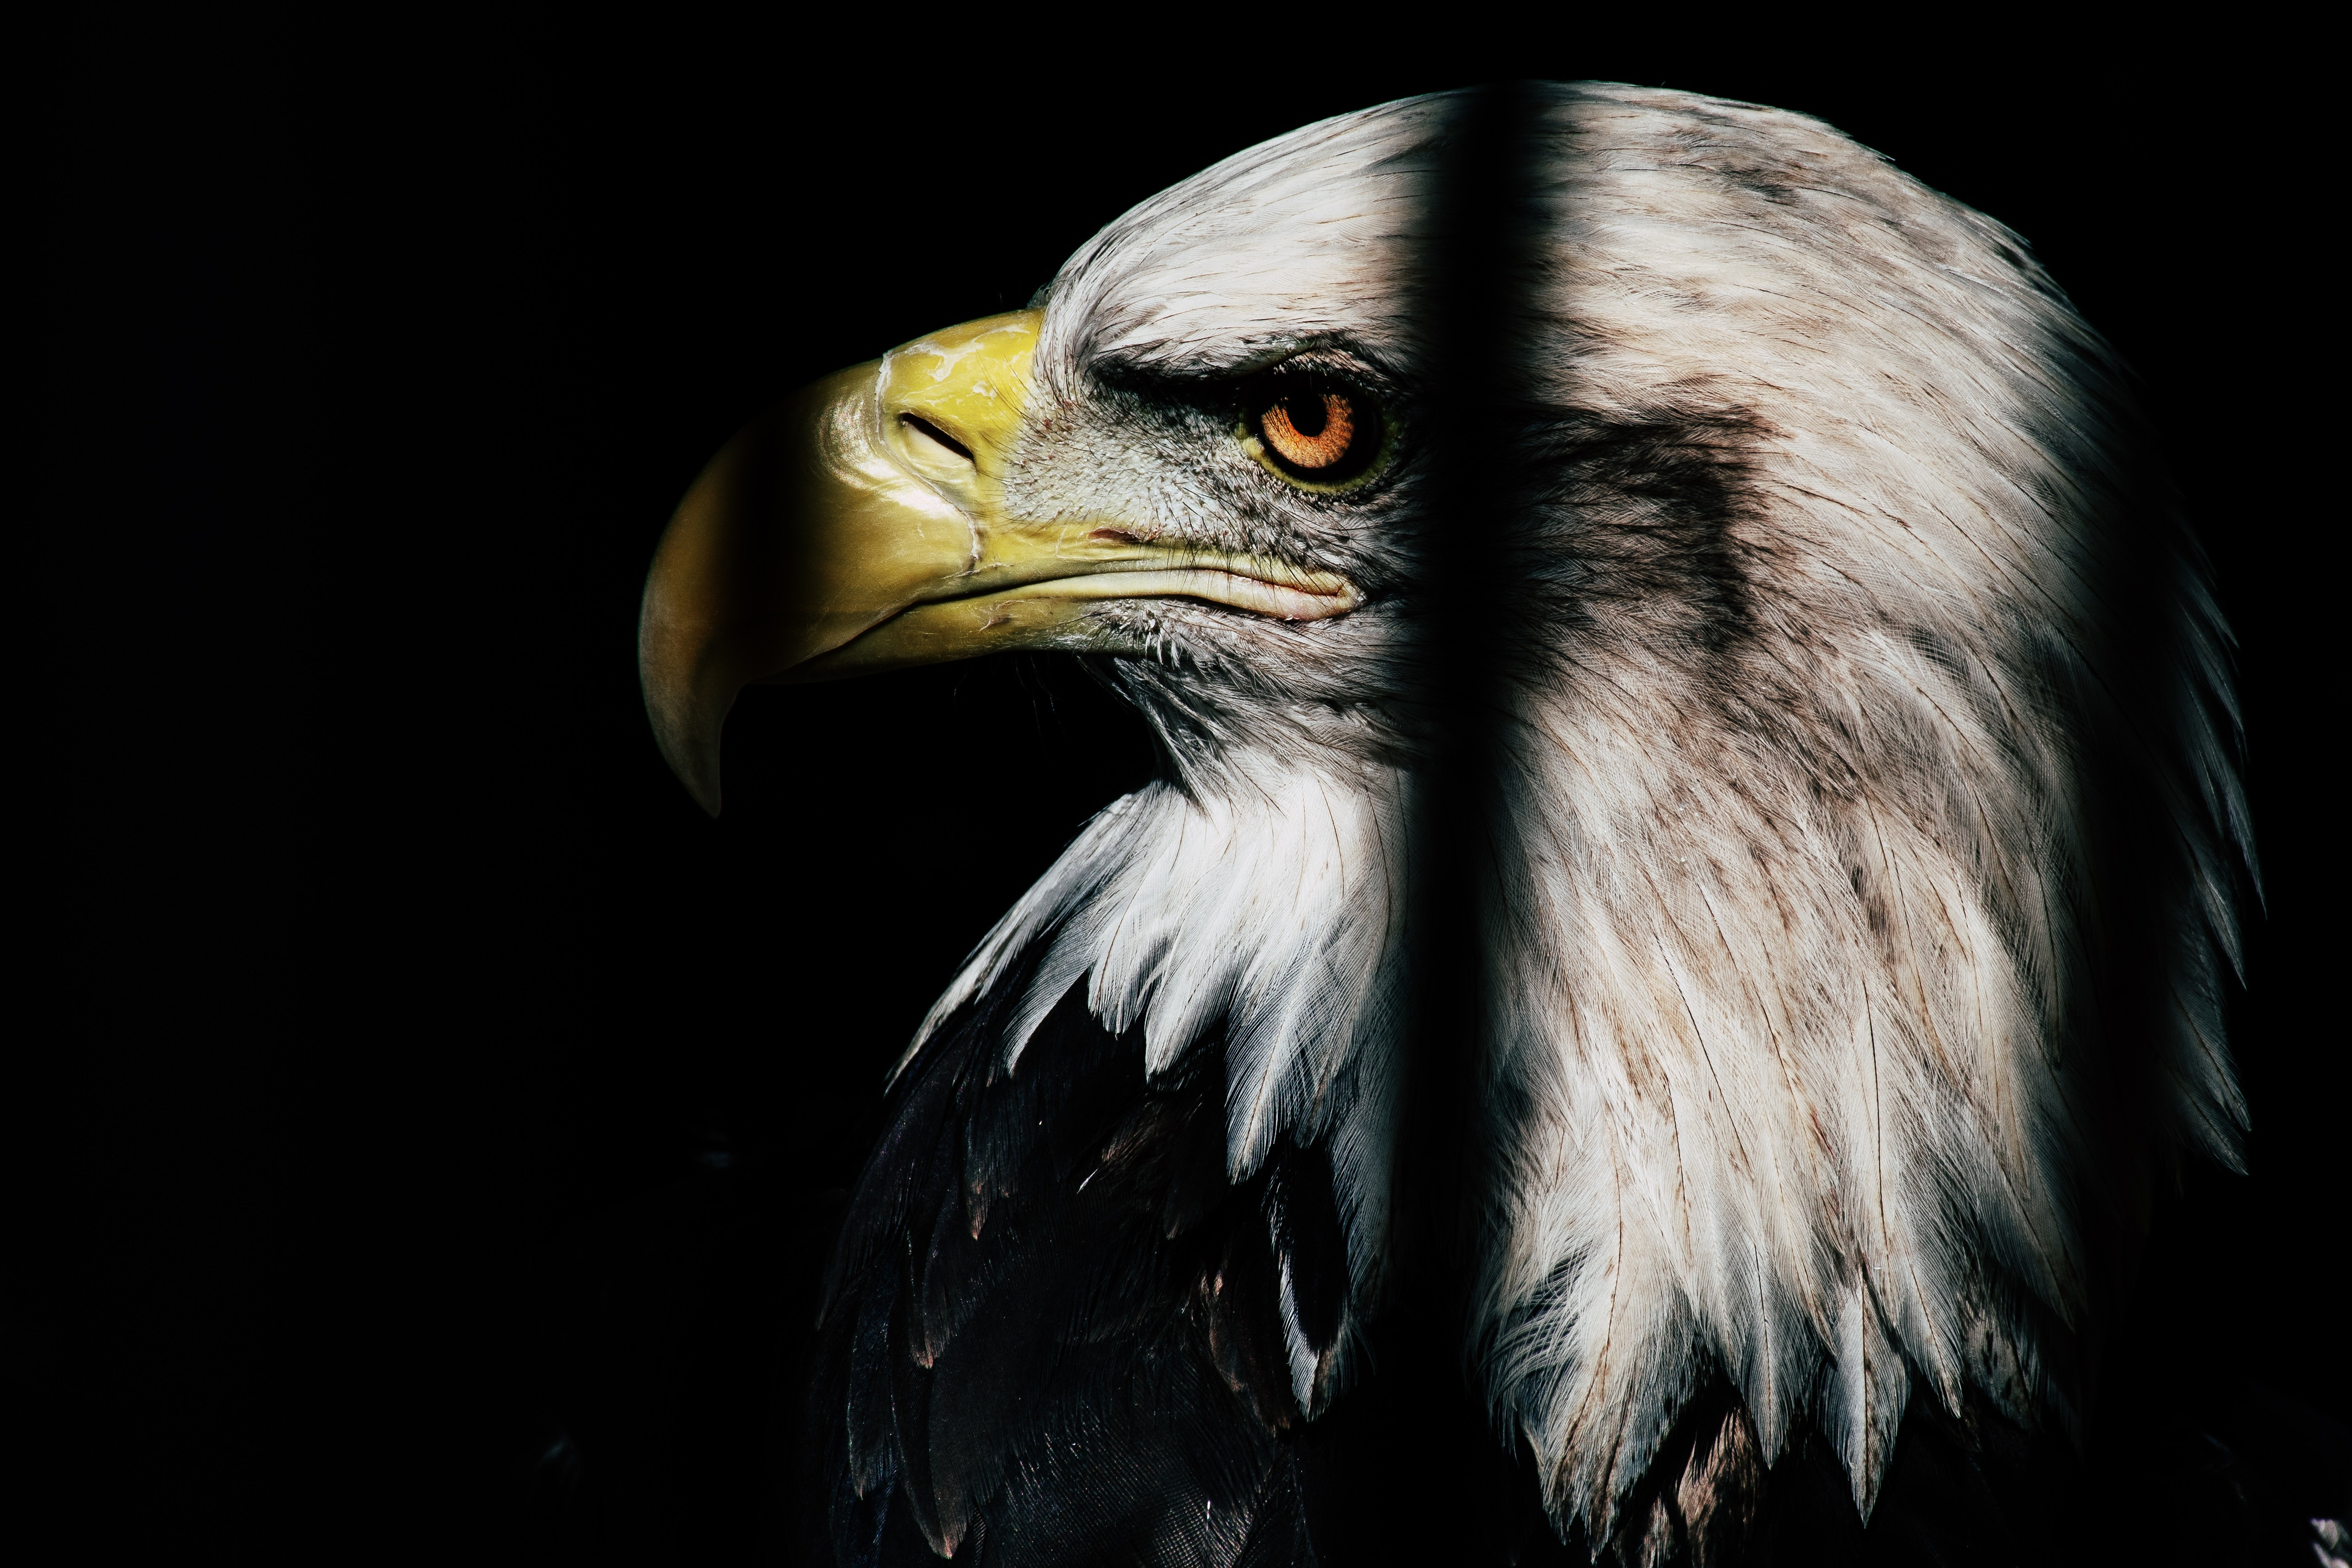 Close Up Photo Of Black And White Eagle Free Stock Photo